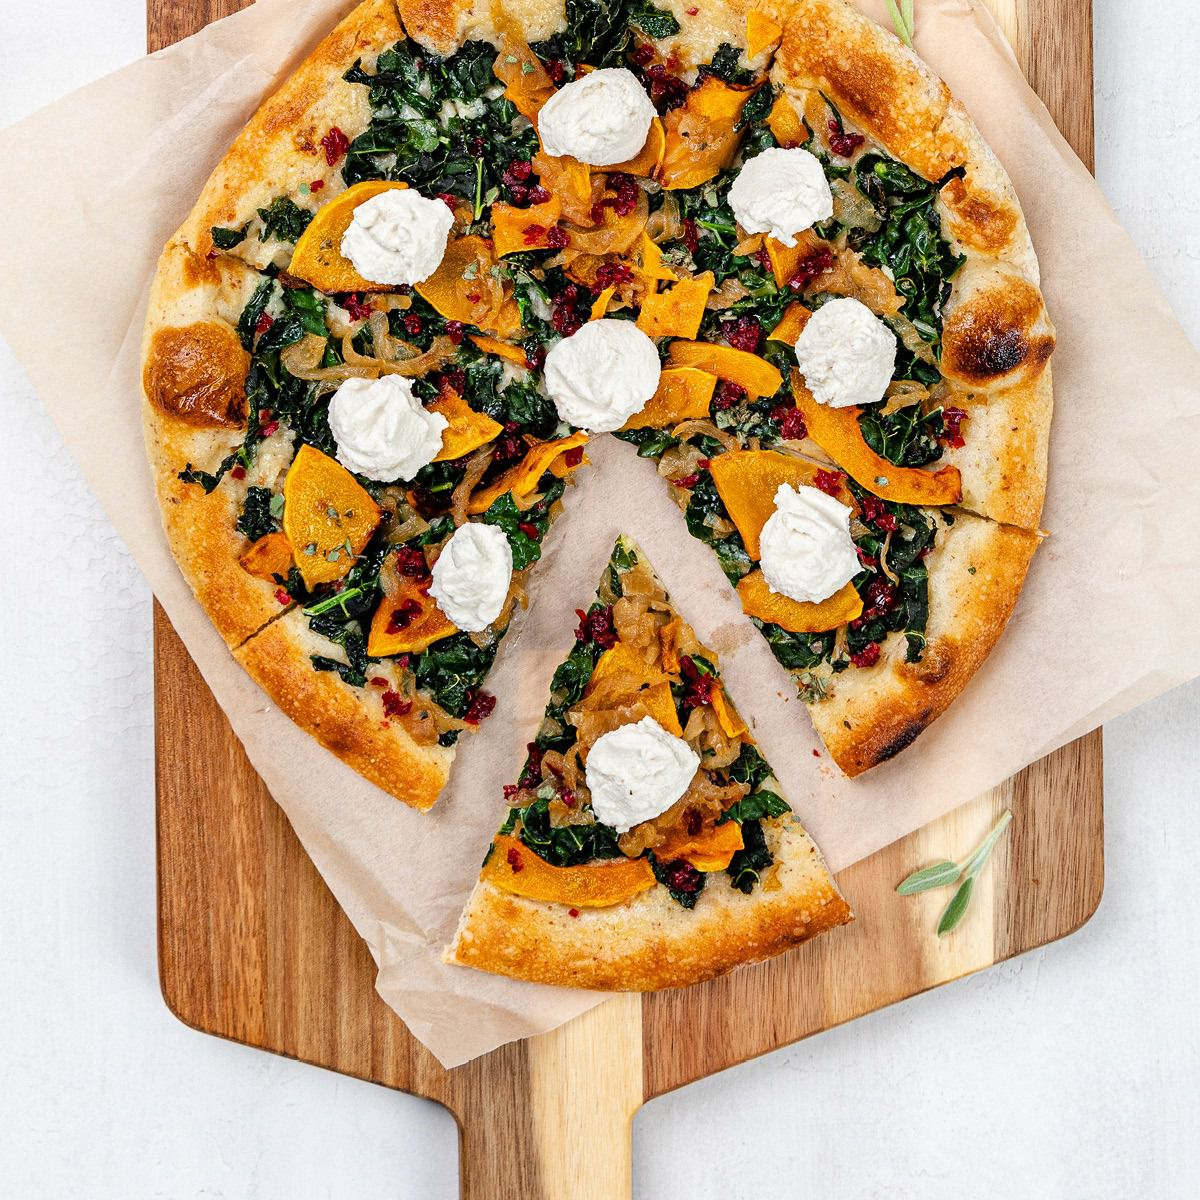 Vegan butternut squash pizza, which can come on a gluten-free crust, topped with ricotta and kale from True Food Kitchen.